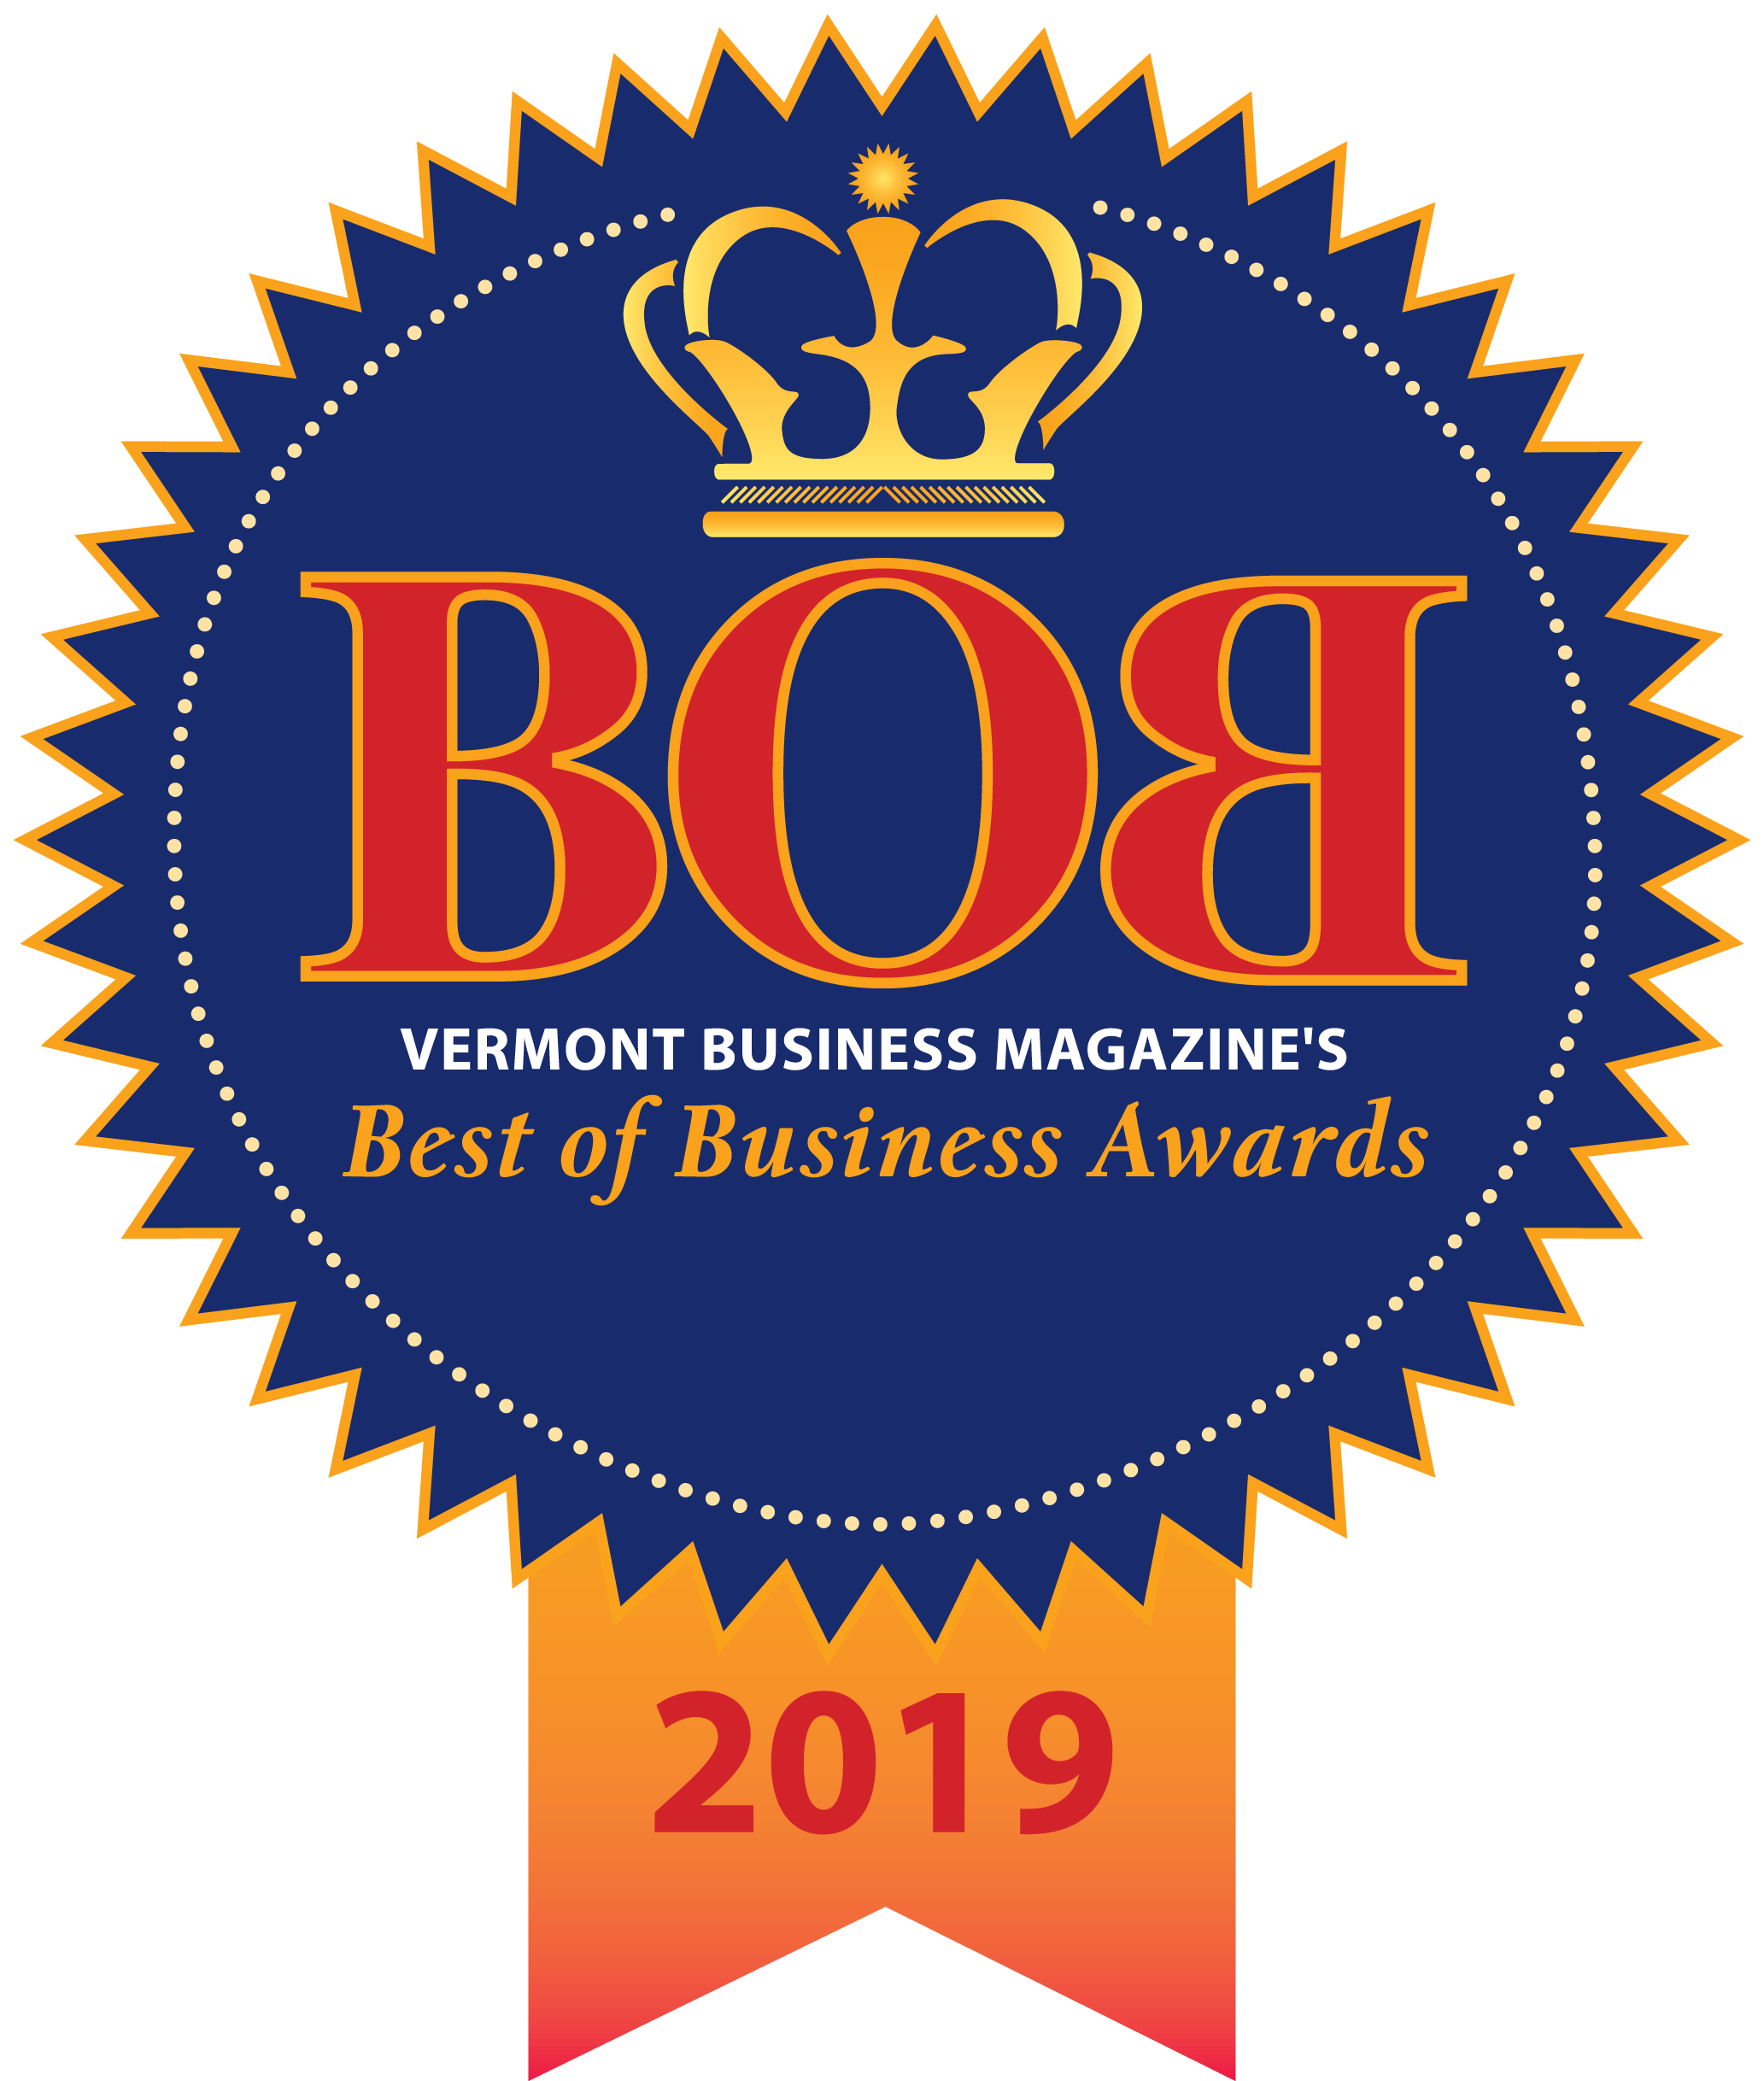 Vermont Business Magazine Bob Awards Survey With Images